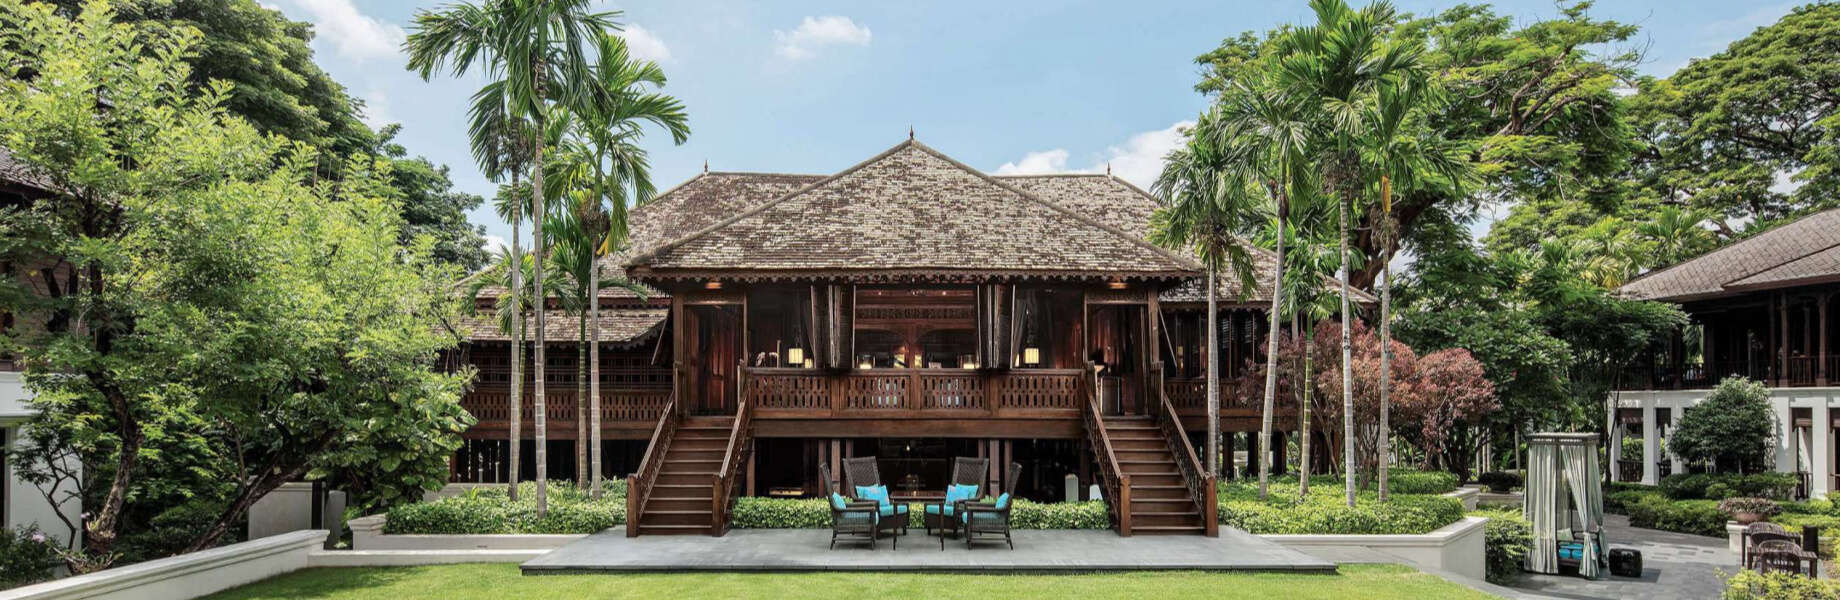 Best of Thailand Hip and Chic - 137 Pillars House Chiang Mai